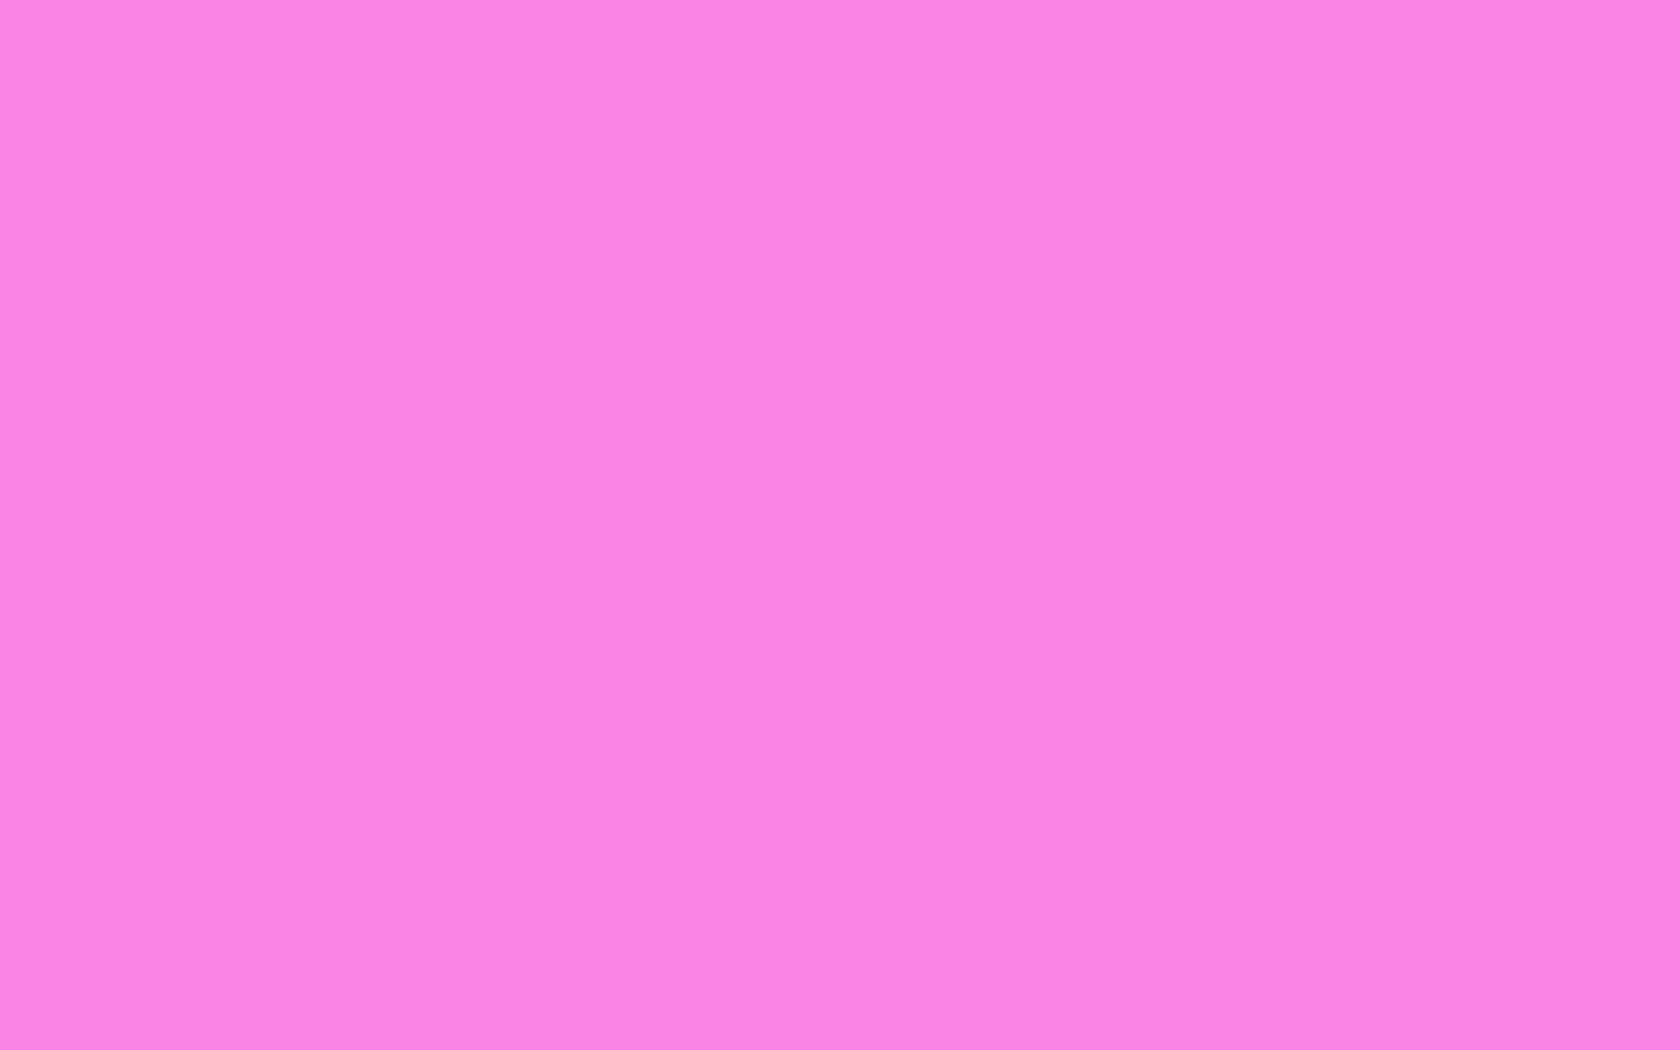 1680x1050 Pale Magenta Solid Color Background